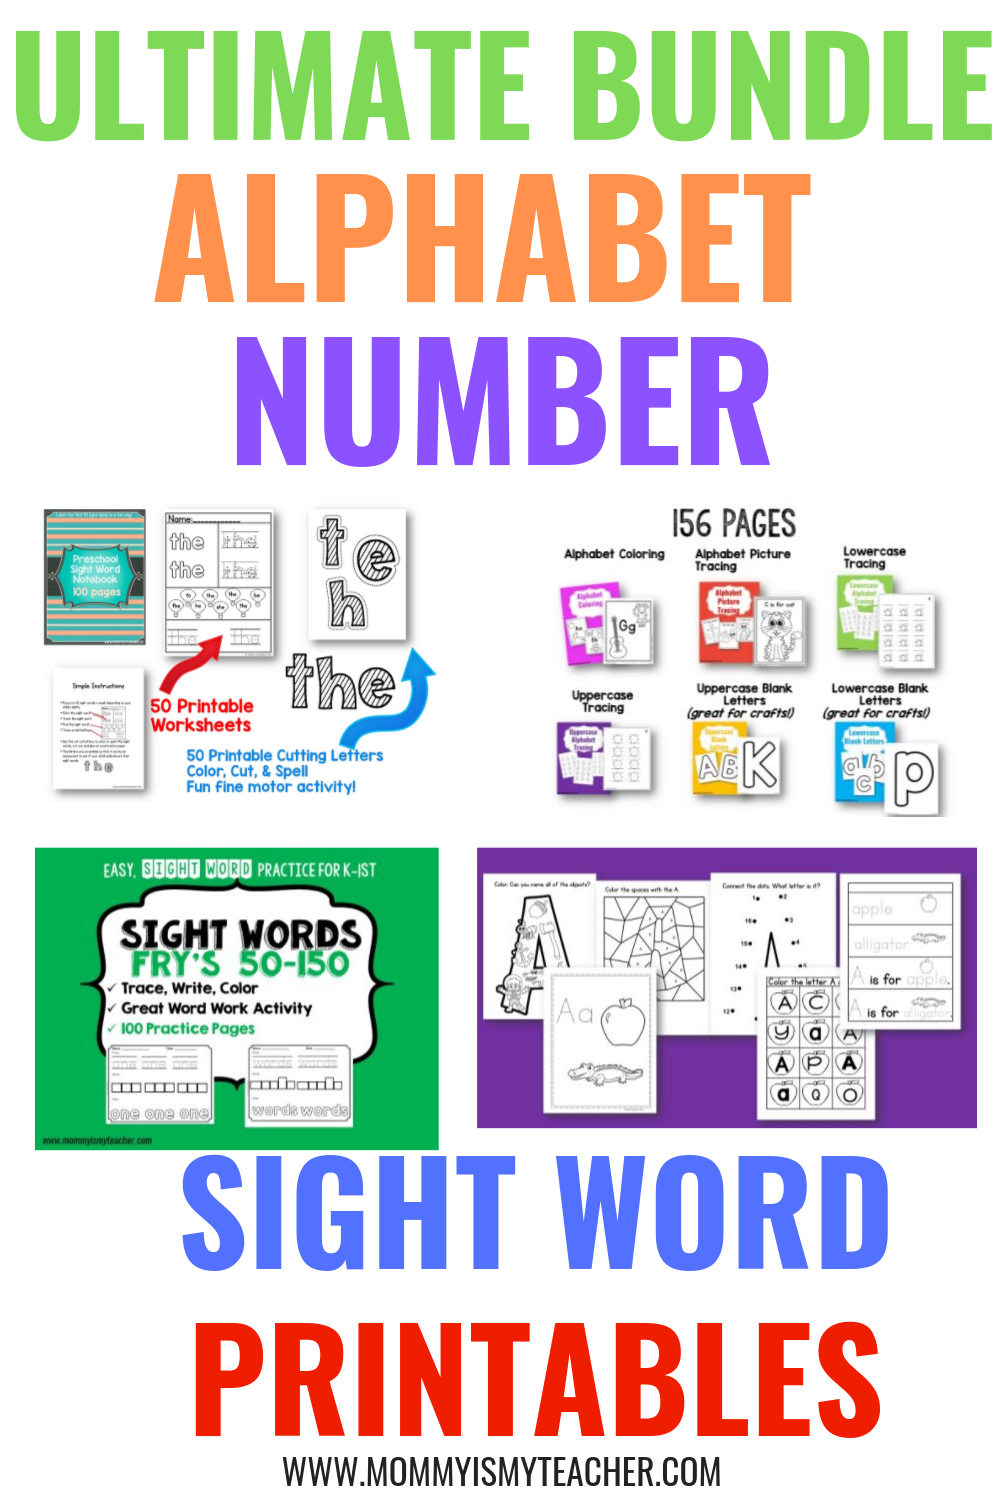 I Love These Kindergarten Printables! They Have Alphabet